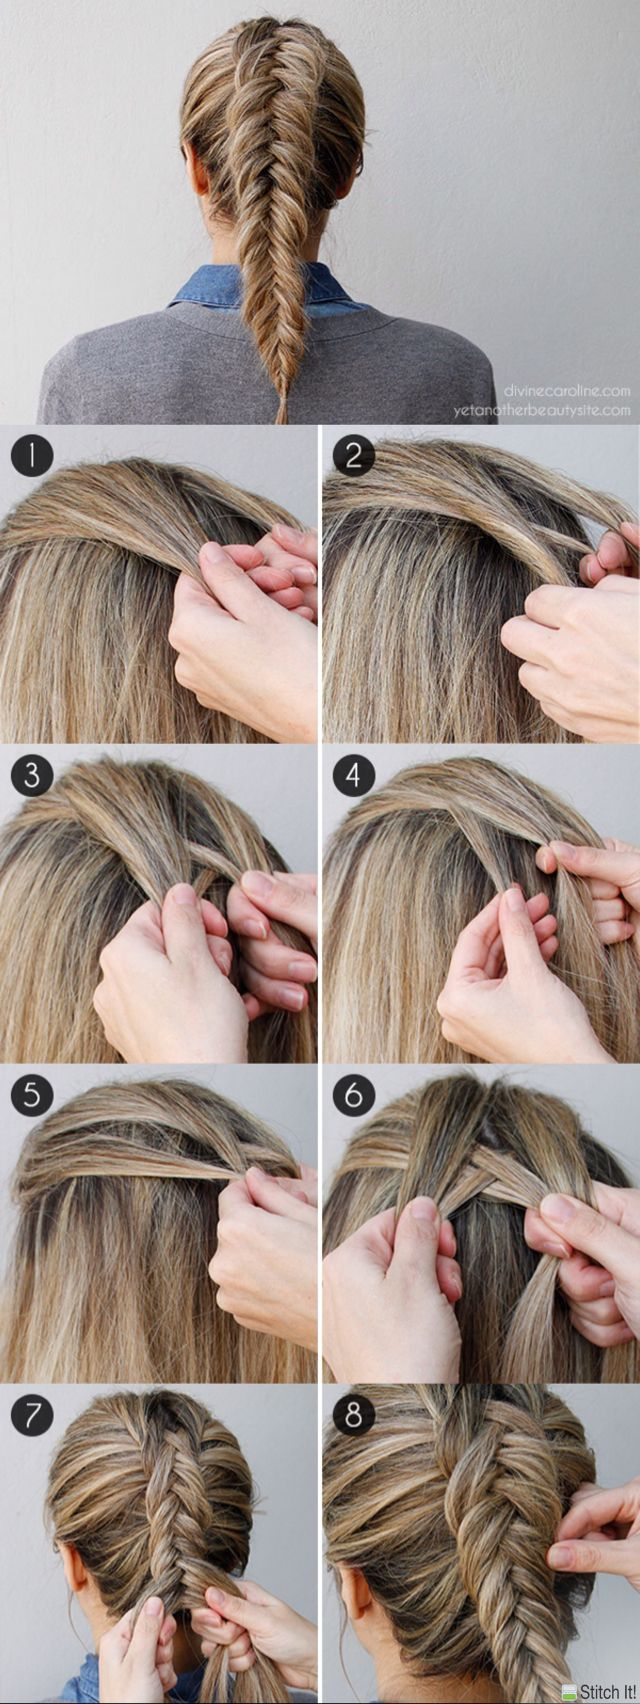 Inverted Dutch Fishtail Braid  https://fr.pinterest.com/disavoie11/